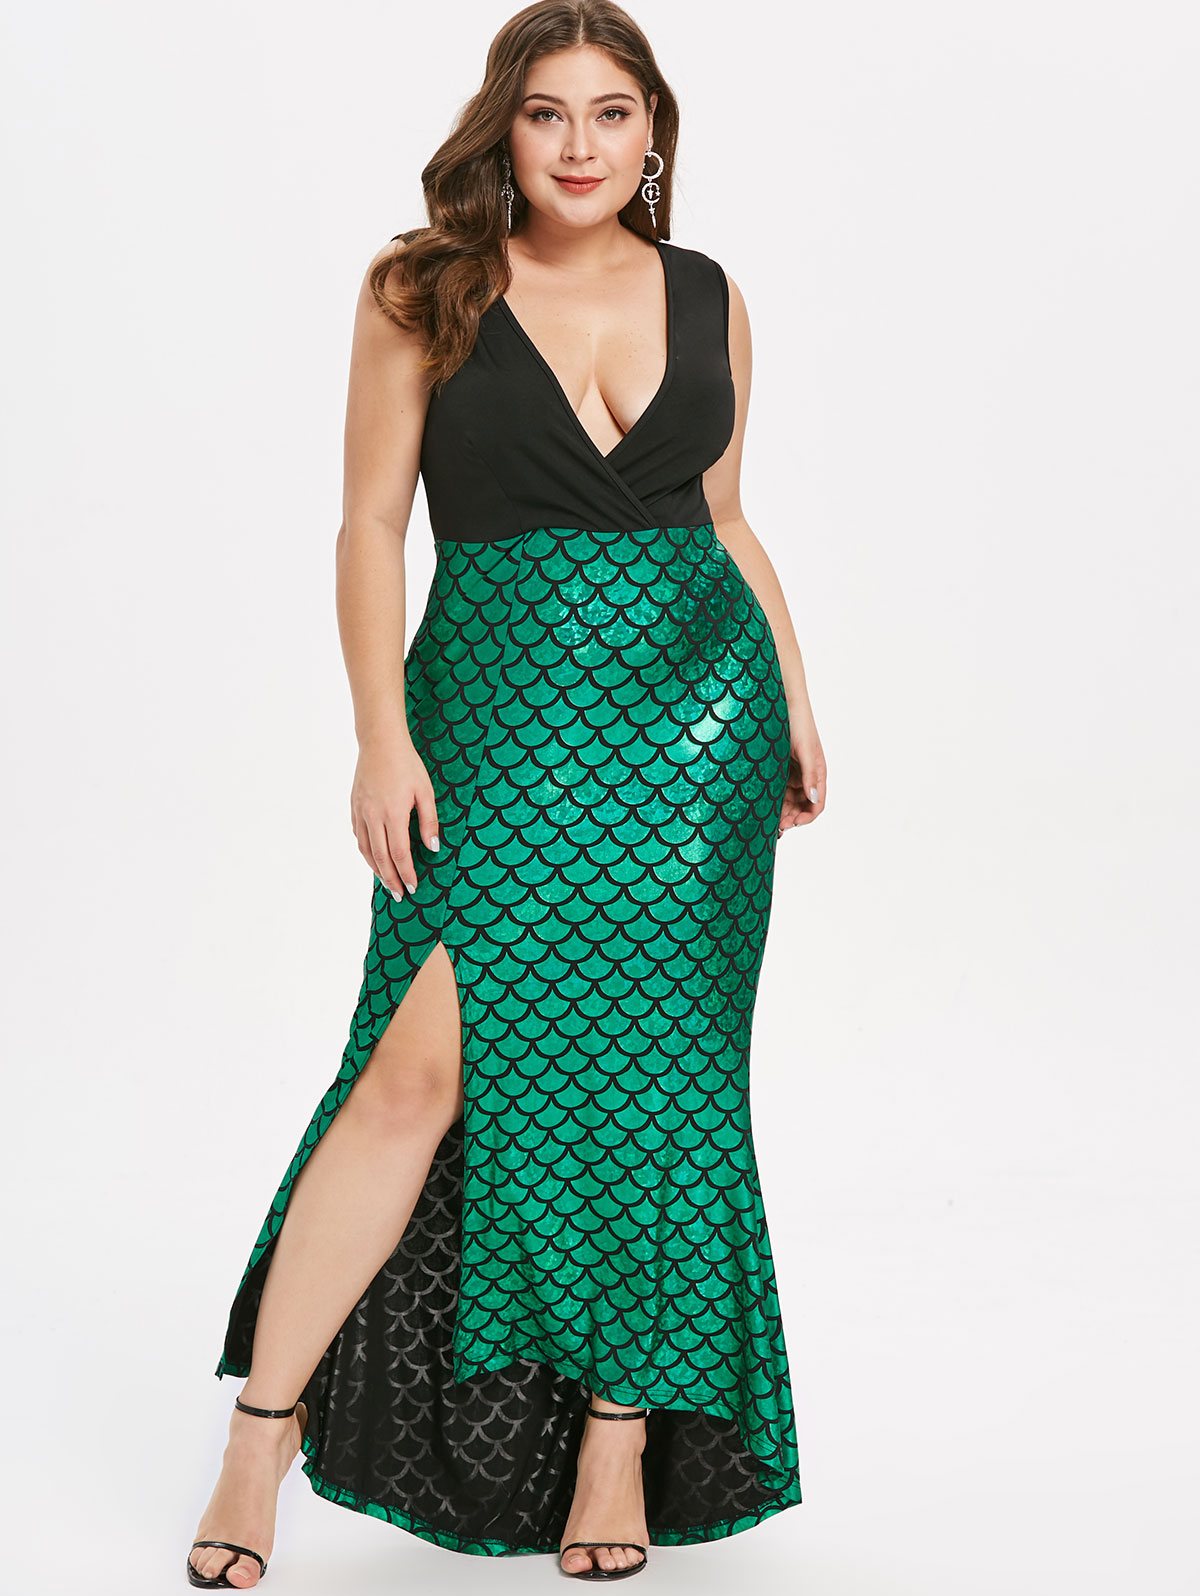 Women <font><b>Sexy</b></font> Deep V-Neck Fish Scale <font><b>Dress</b></font> Sleeveless Patchwork Maxi <font><b>Dress</b></font> Split Mermaid <font><b>Dress</b></font> Vestidos Plus Size Party <font><b>Dresses</b></font> <font><b>5XL</b></font> image